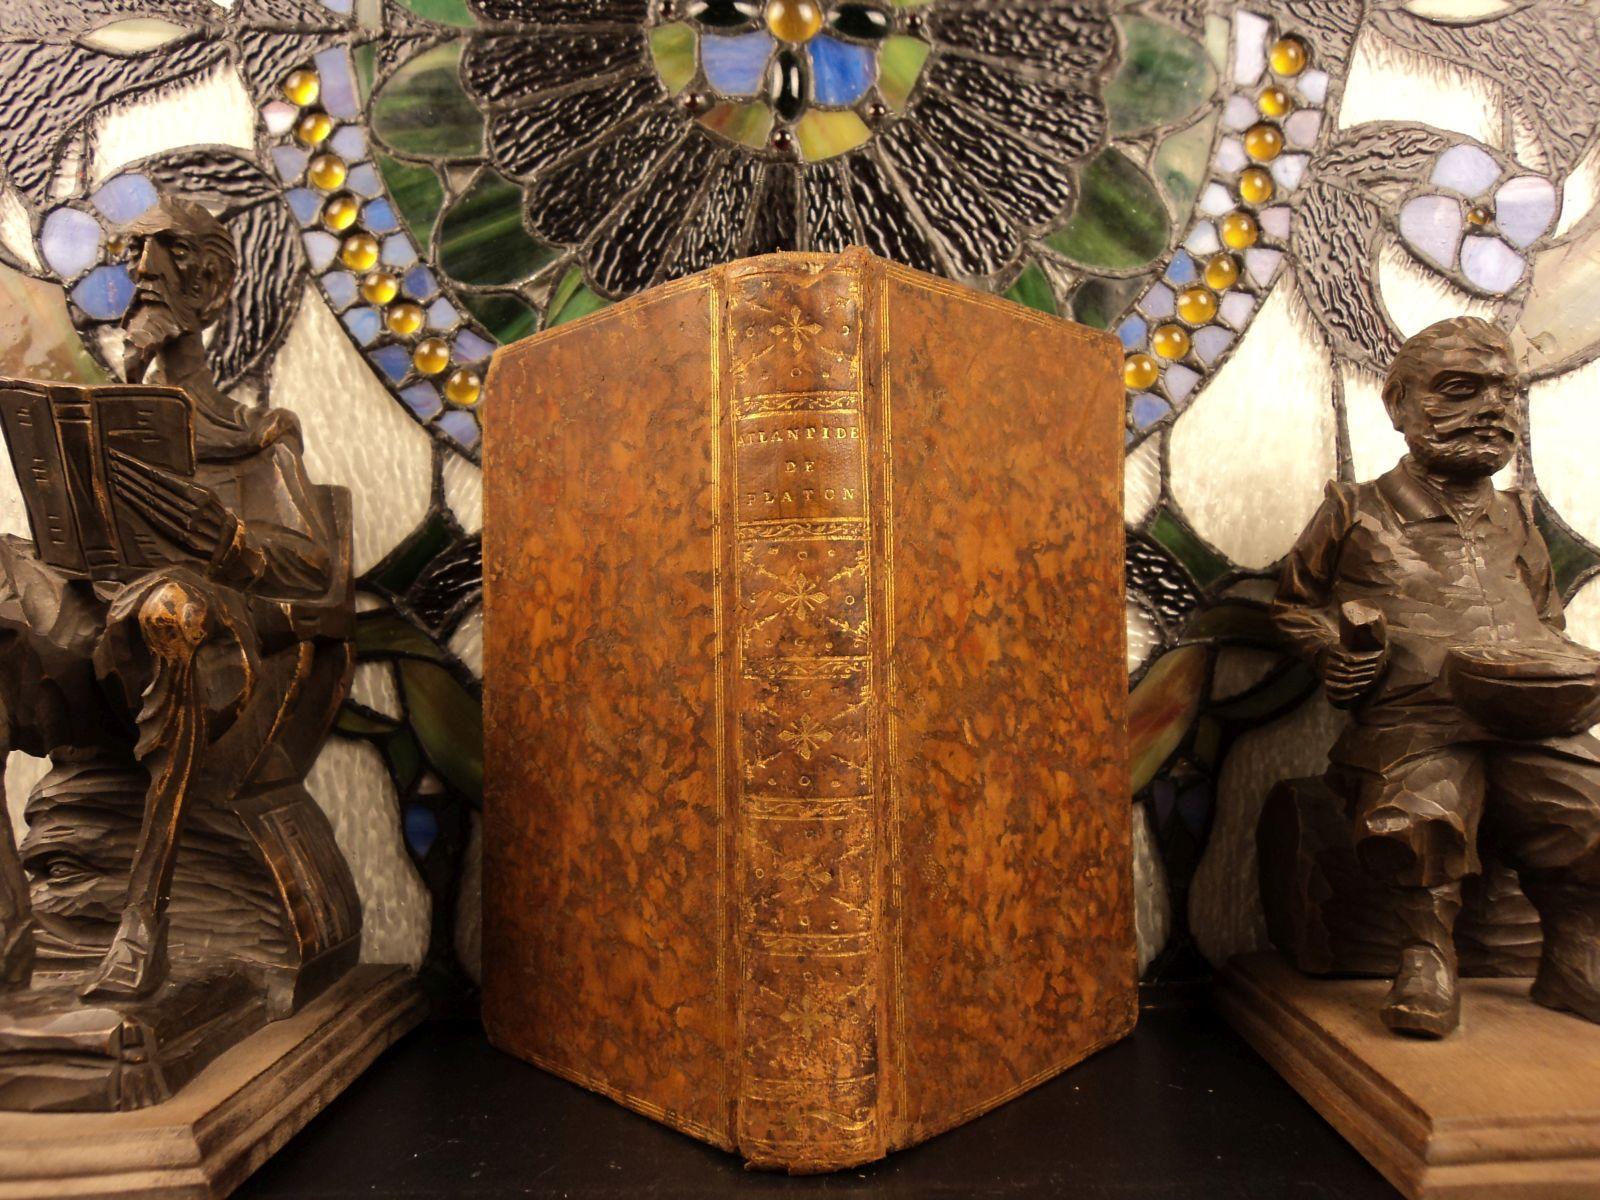 1779 1st ed Lost City of ATLANTIS w/ Plato Astronomy Voltaire Bailly MAP of Asia Jean Sylvain Bailly Near Fine Hardcover